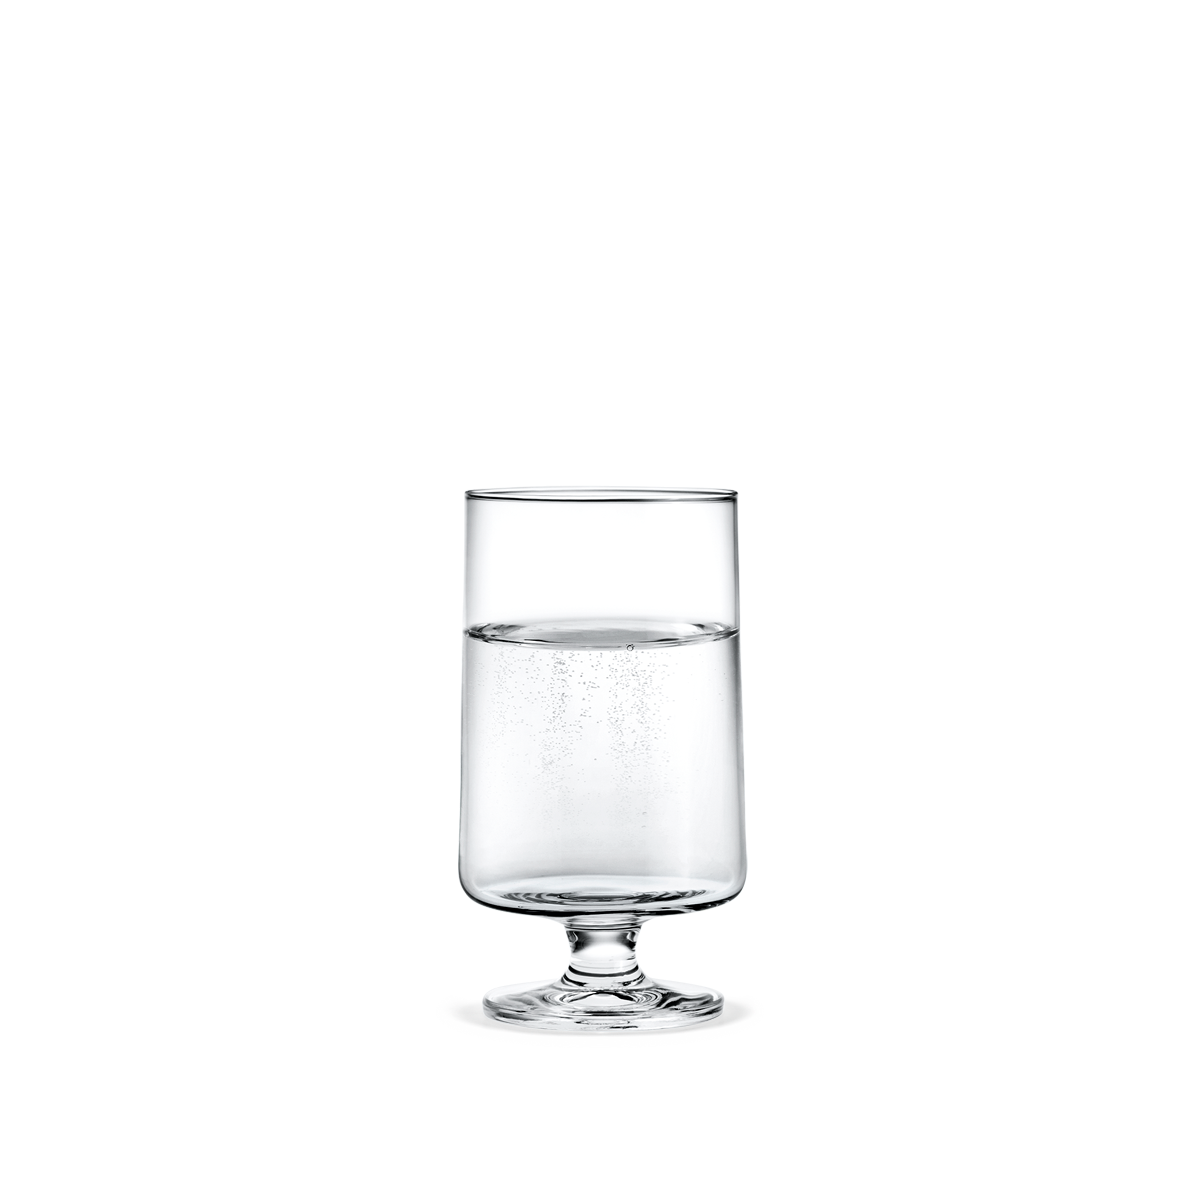 Stub Glass, 12.2 oz, 2 Pcs.